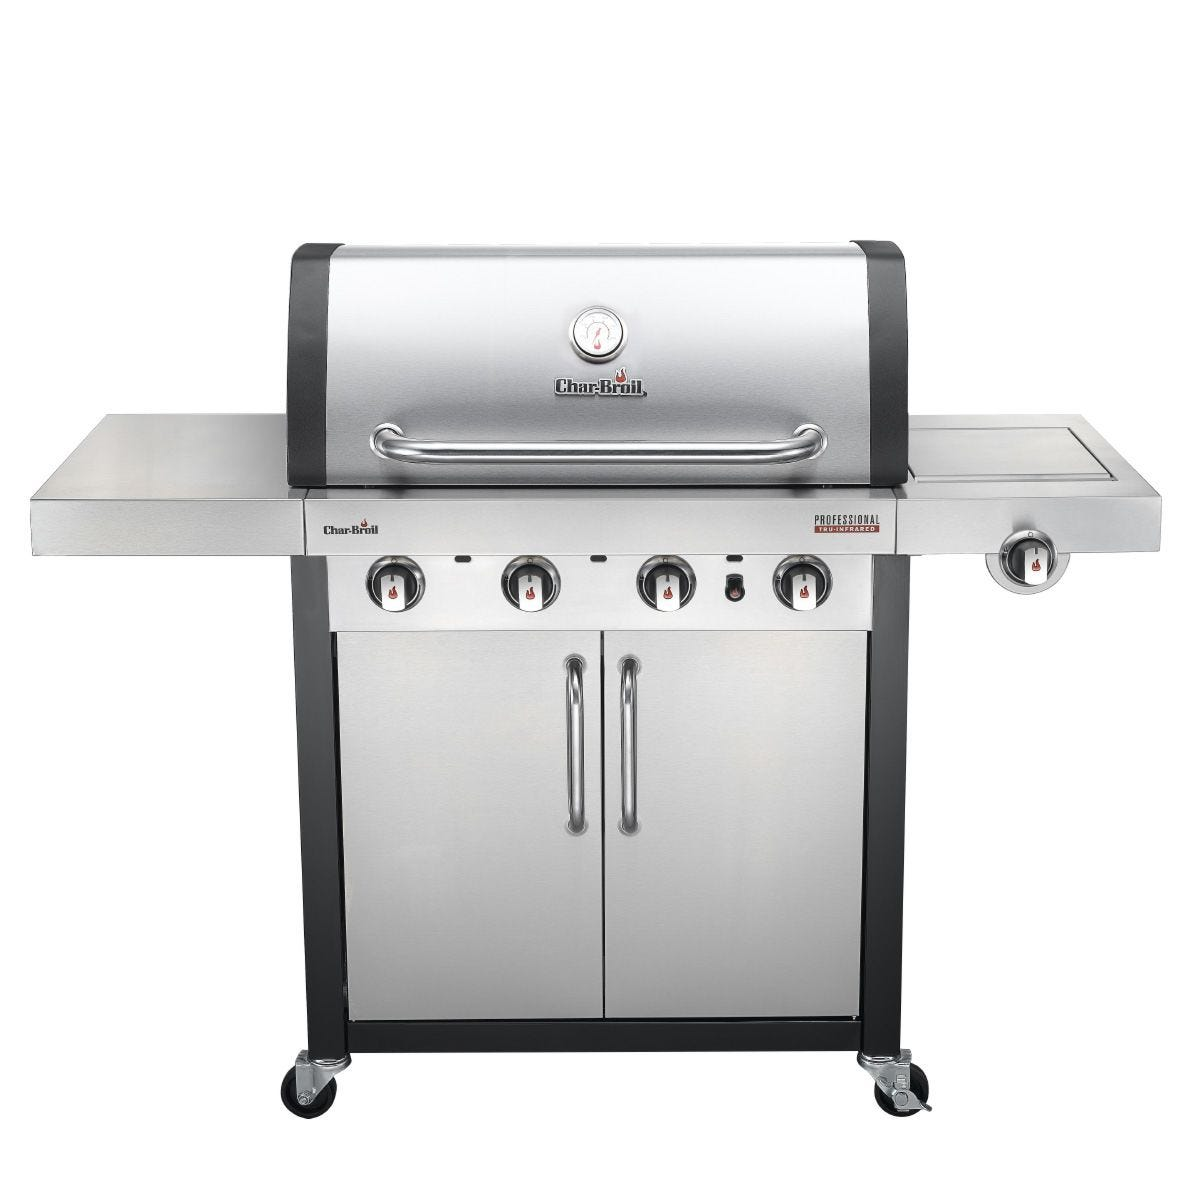 Char-Broil Professional 4400S 4 Burner Gas BBQ - Stainless Steel